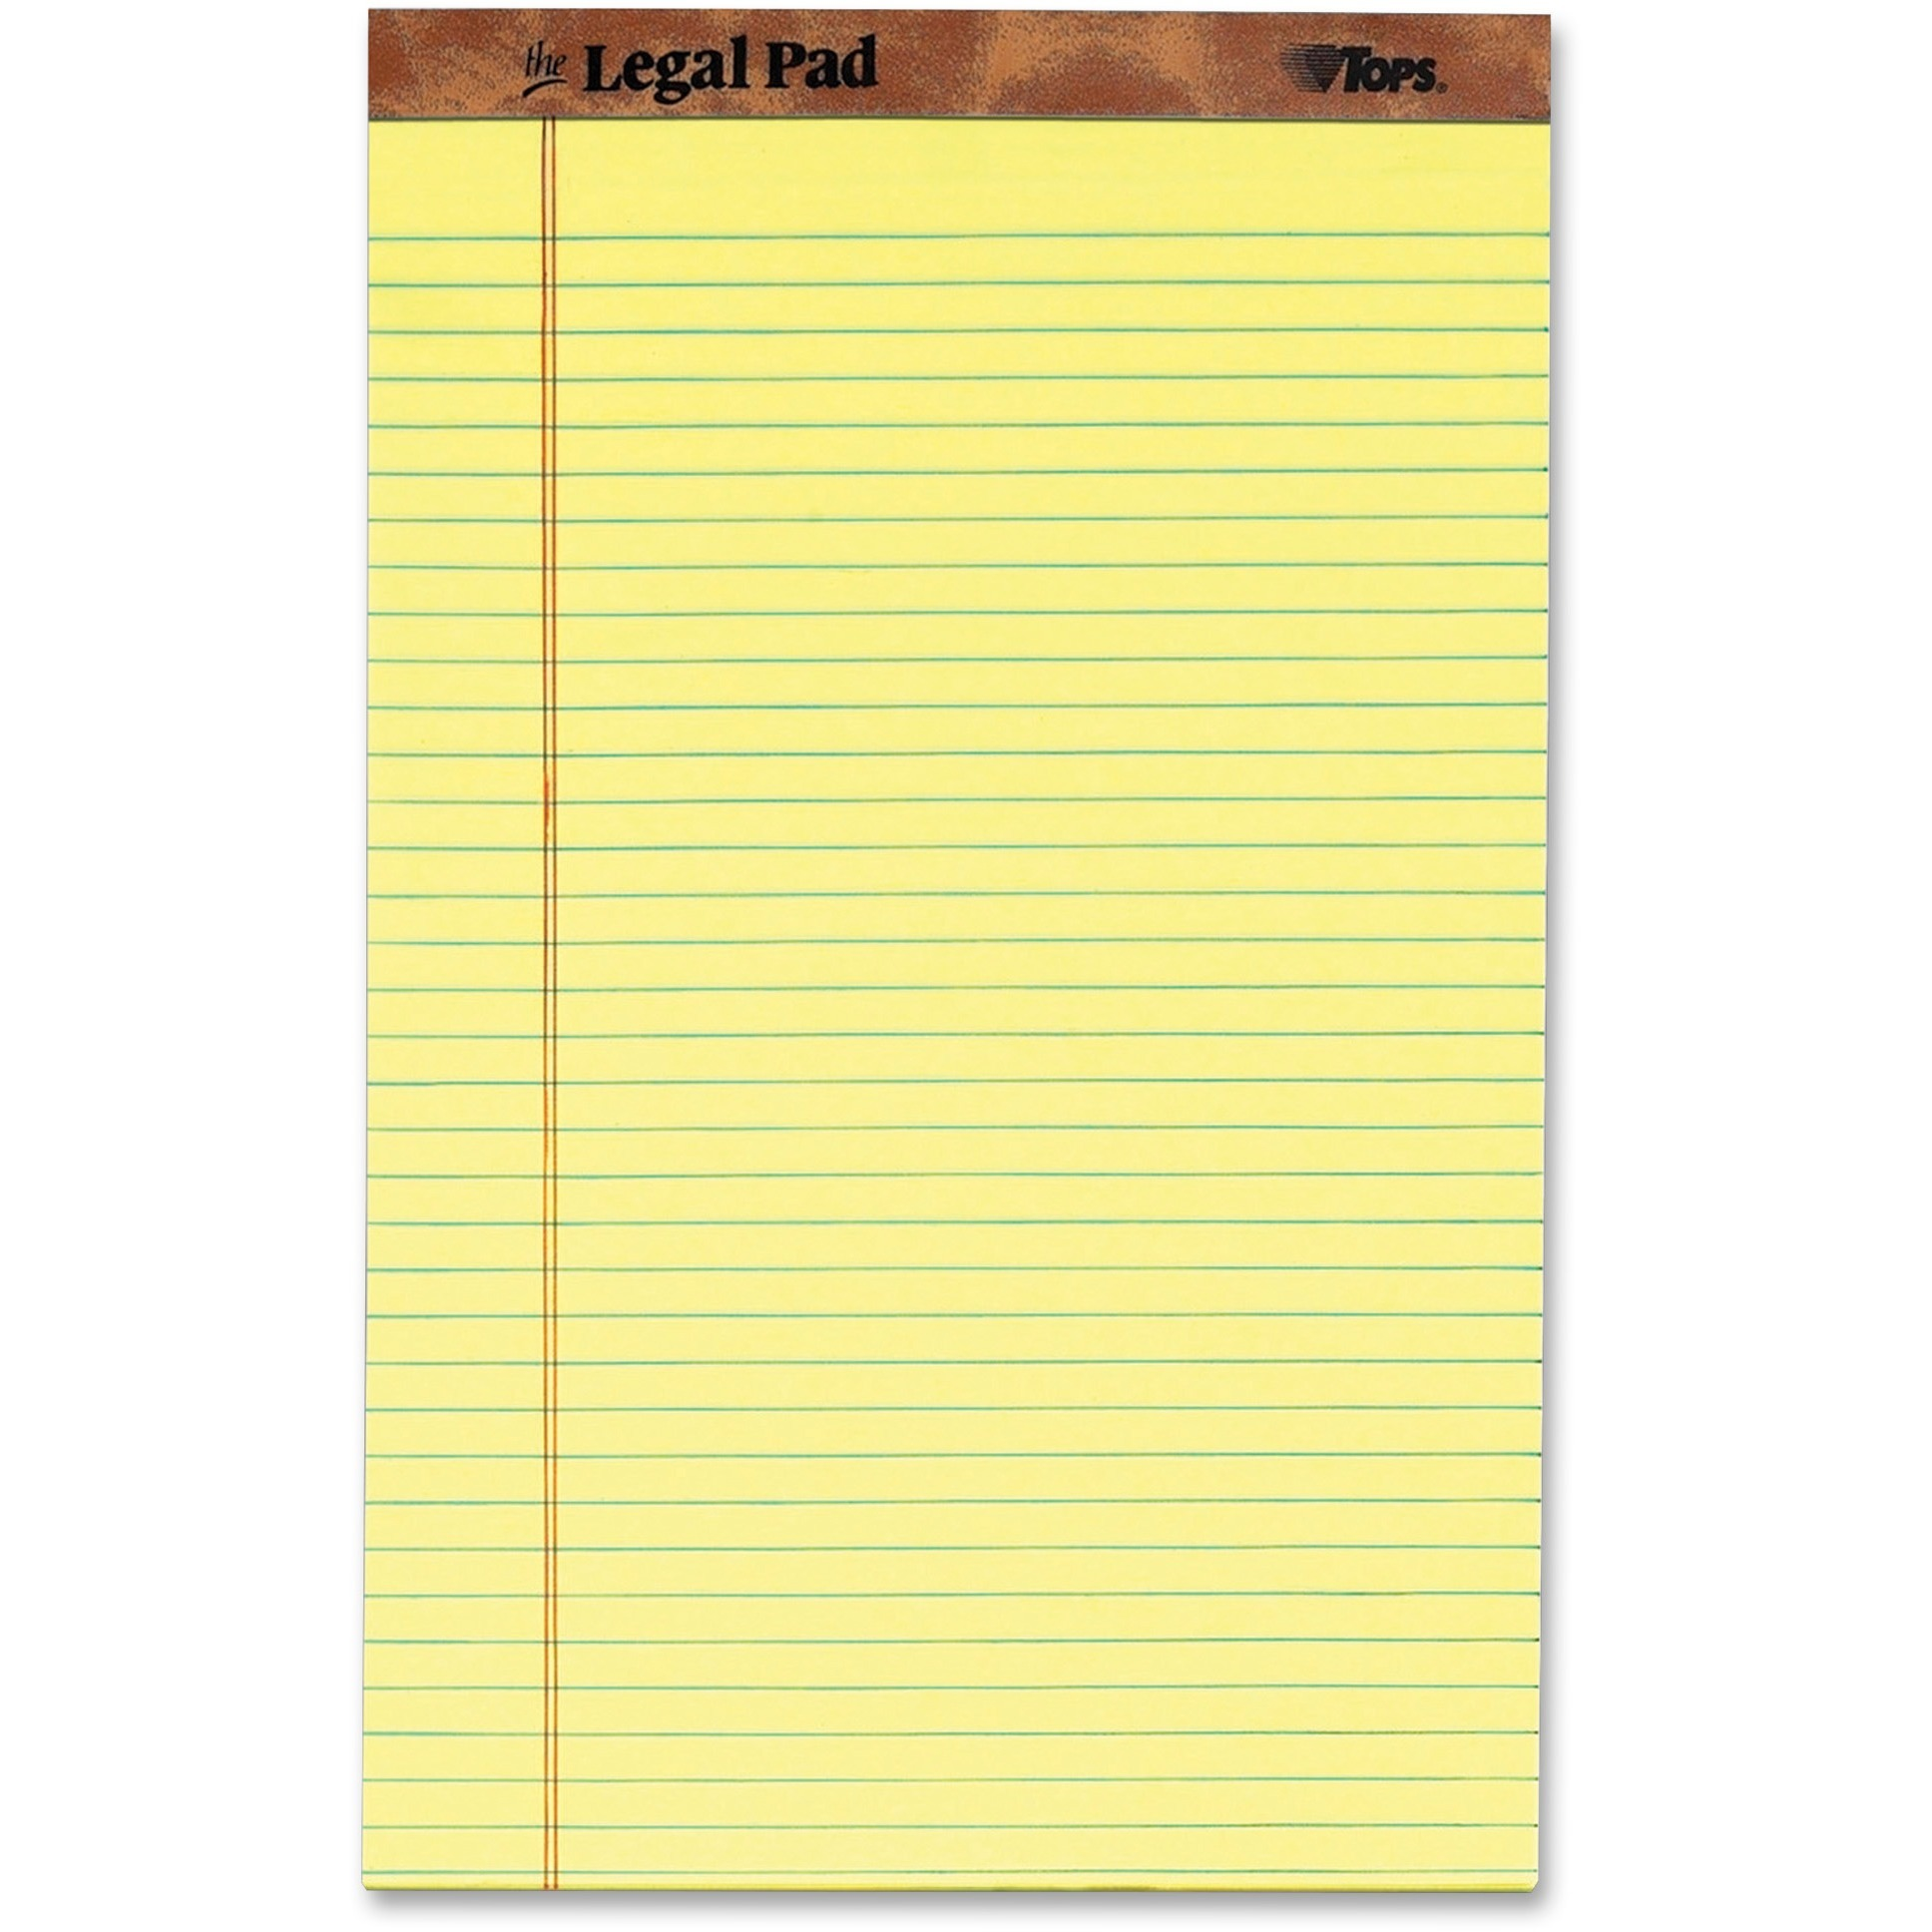 TOPS, TOP7572, The Legal Rule Writing Pads - Legal, 1 Dozen